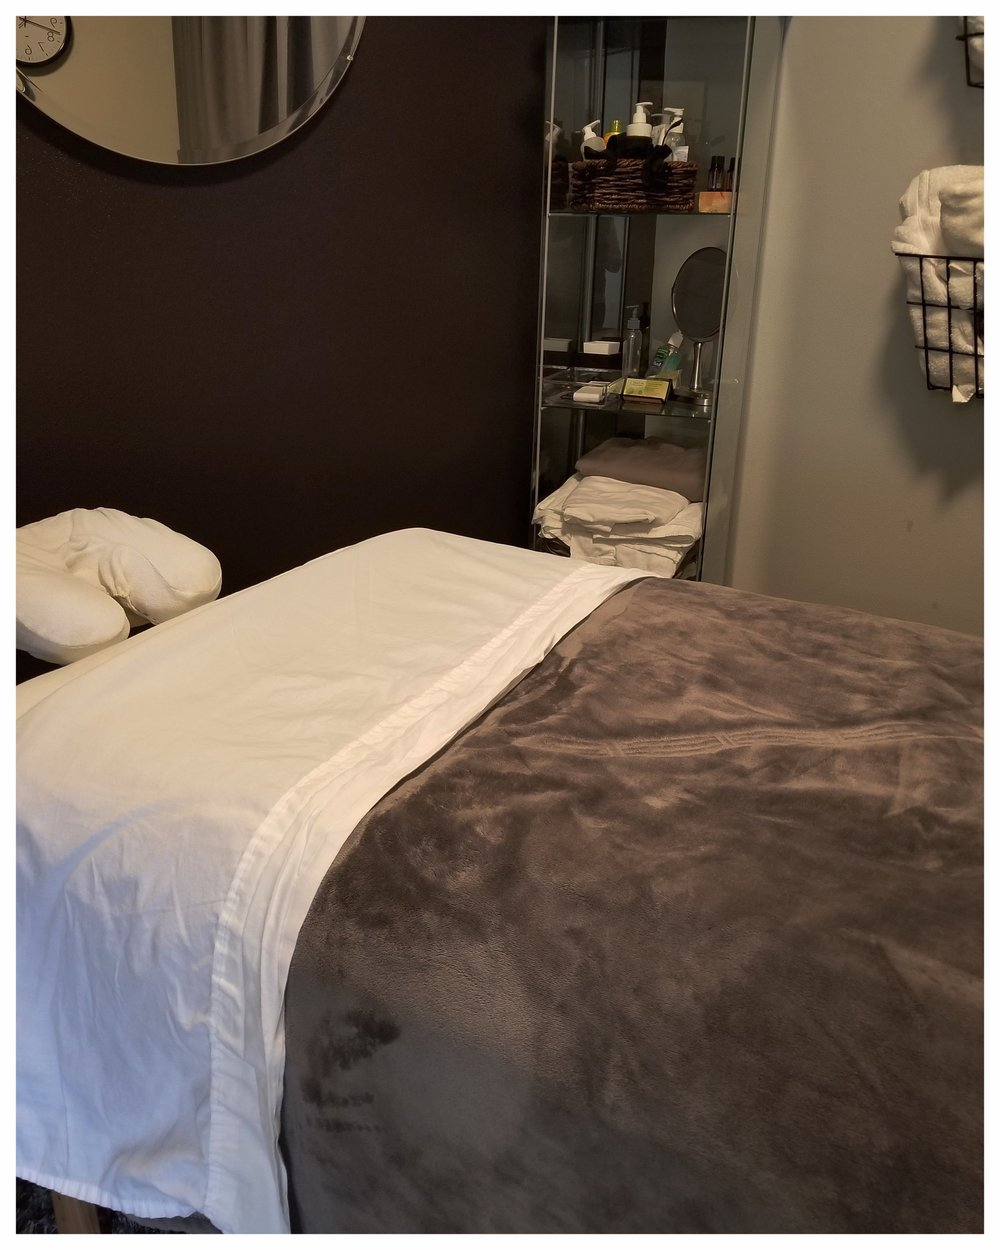 relax.Recharge. - Massage options available: Swedish, Deep Tissue, and Therapeutic.    *Complimentary Pure Grade Essential Oils with your Massage.Ask us about our New Client Specials!